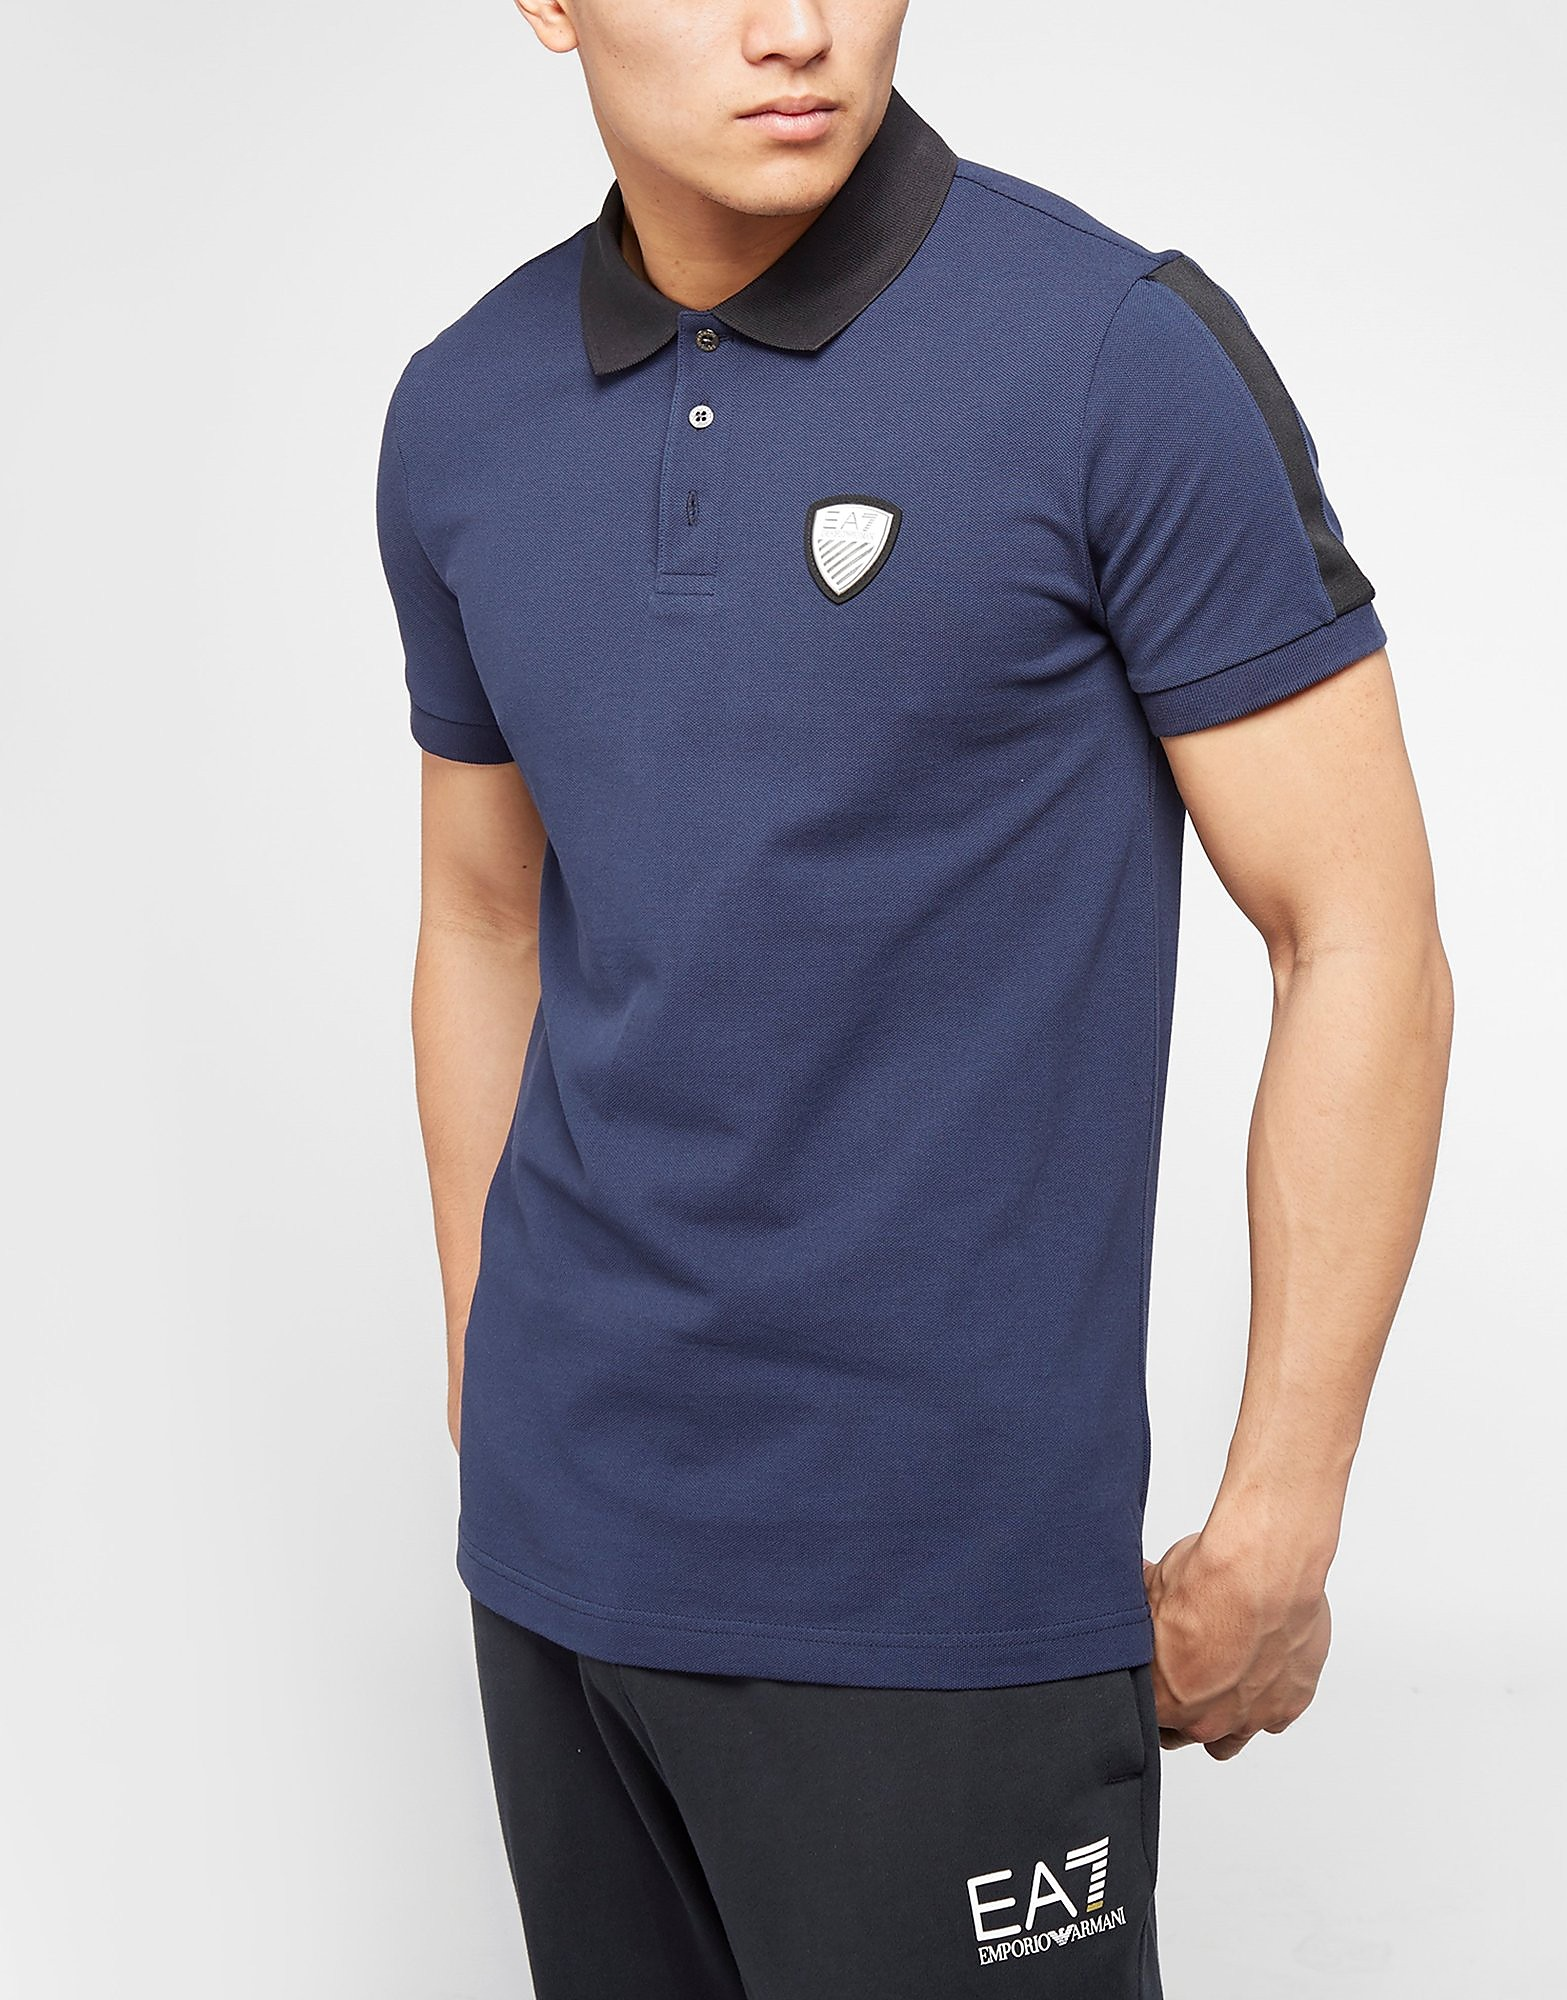 Emporio Armani EA7 Short Sleeve Polo Shirt - Exclusive